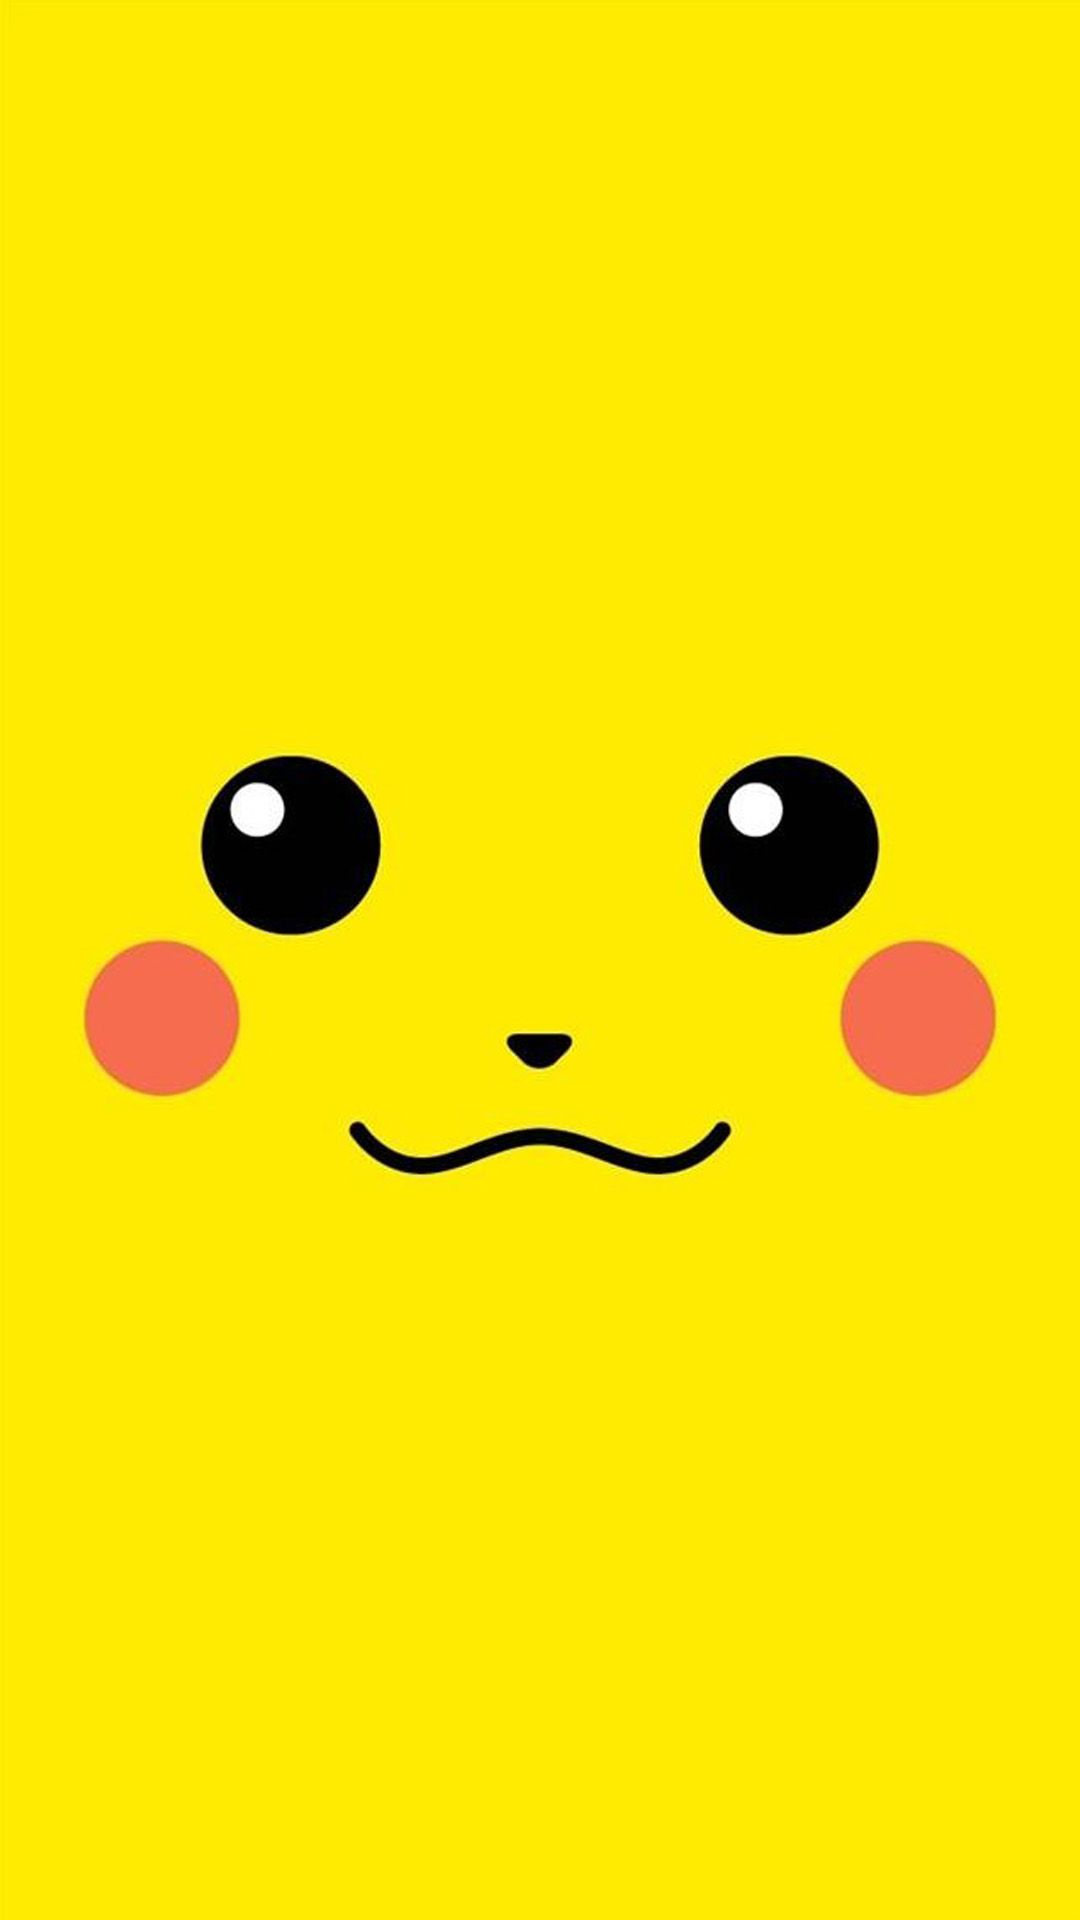 Tap And Get The Free App Minimalistic Pikachu Yellow Unicolor Cute Funny Pokemon Japanese Cartoo Wallpaper Iphone Cute Cute Wallpapers Pink Wallpaper Iphone